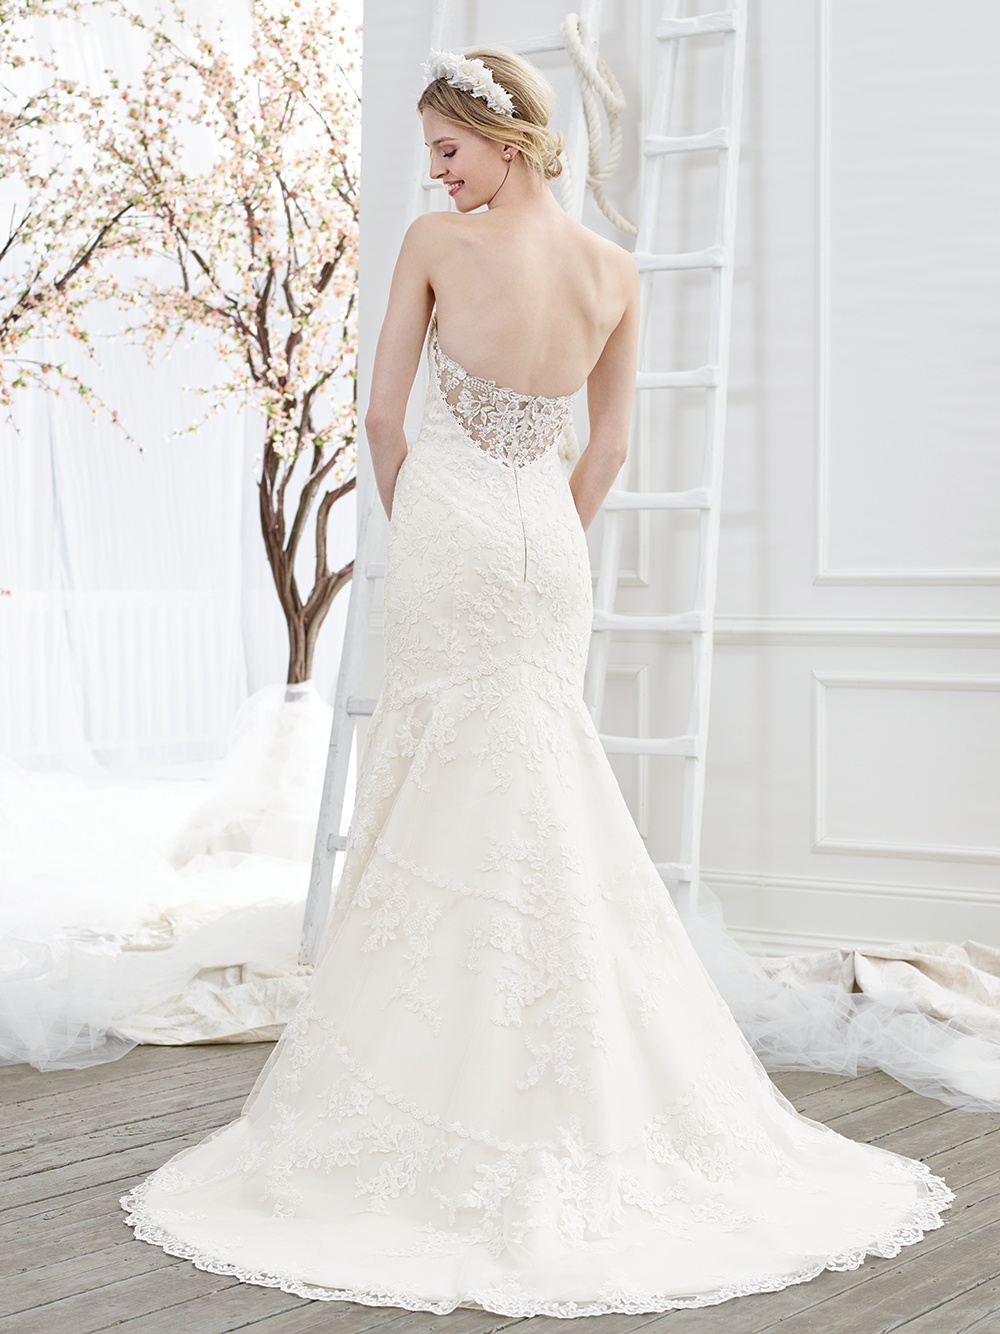 Whimsy gown - Beloved by Casablanca